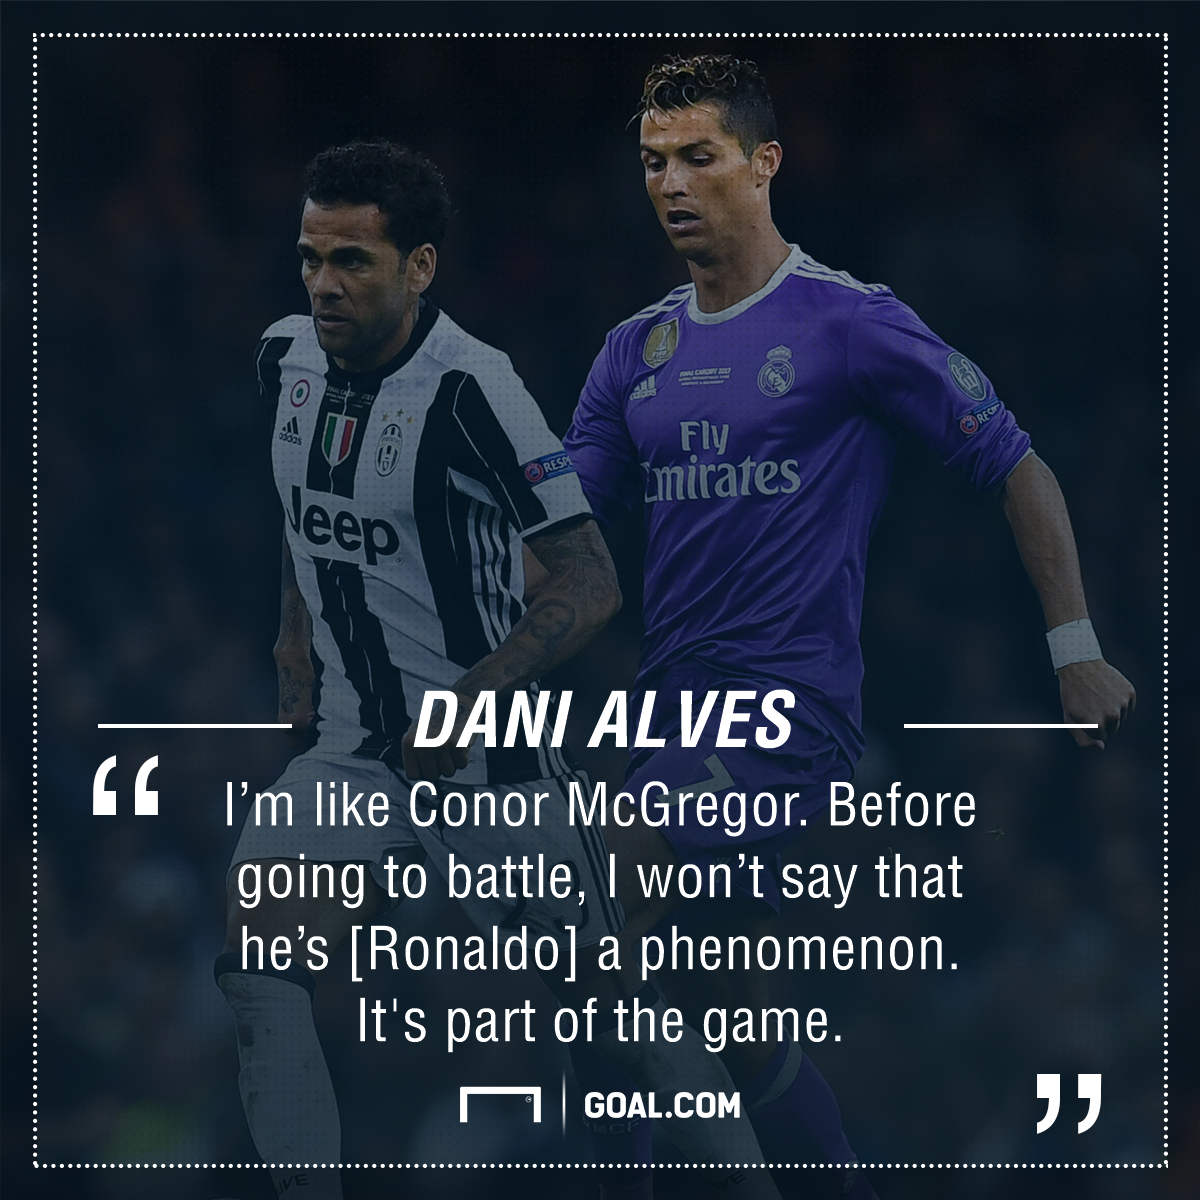 Dani Alves is very close to joining Manchester City